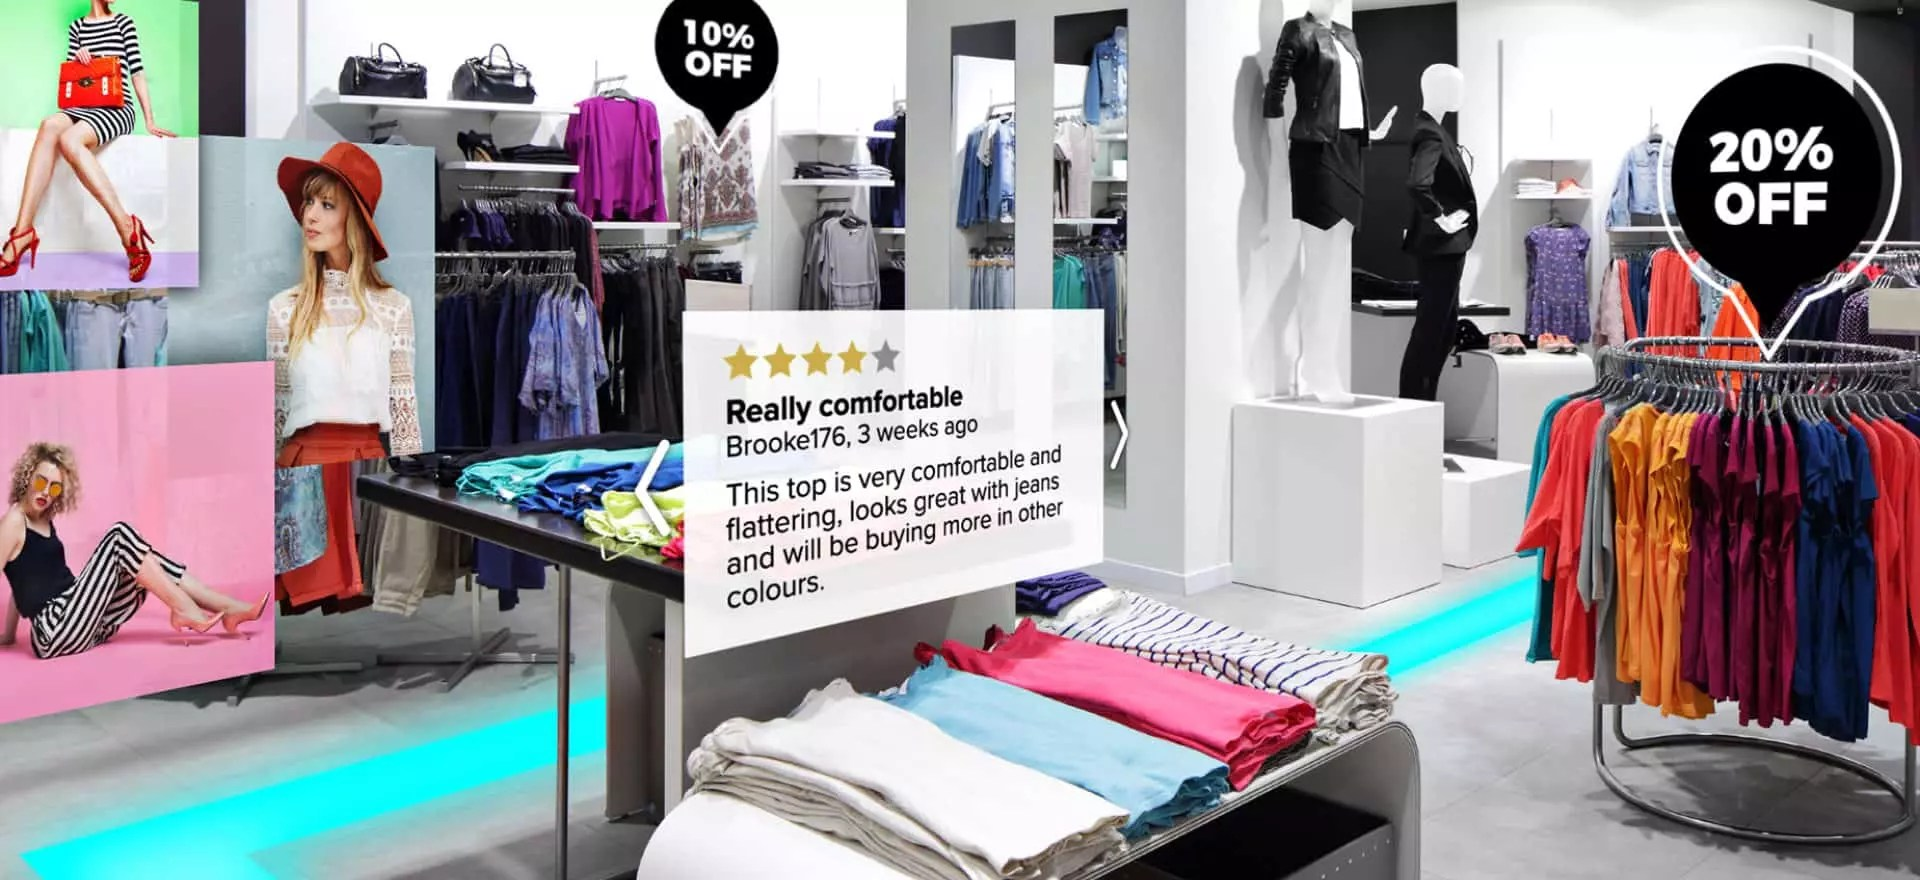 Role of AR in Physical Retail Space